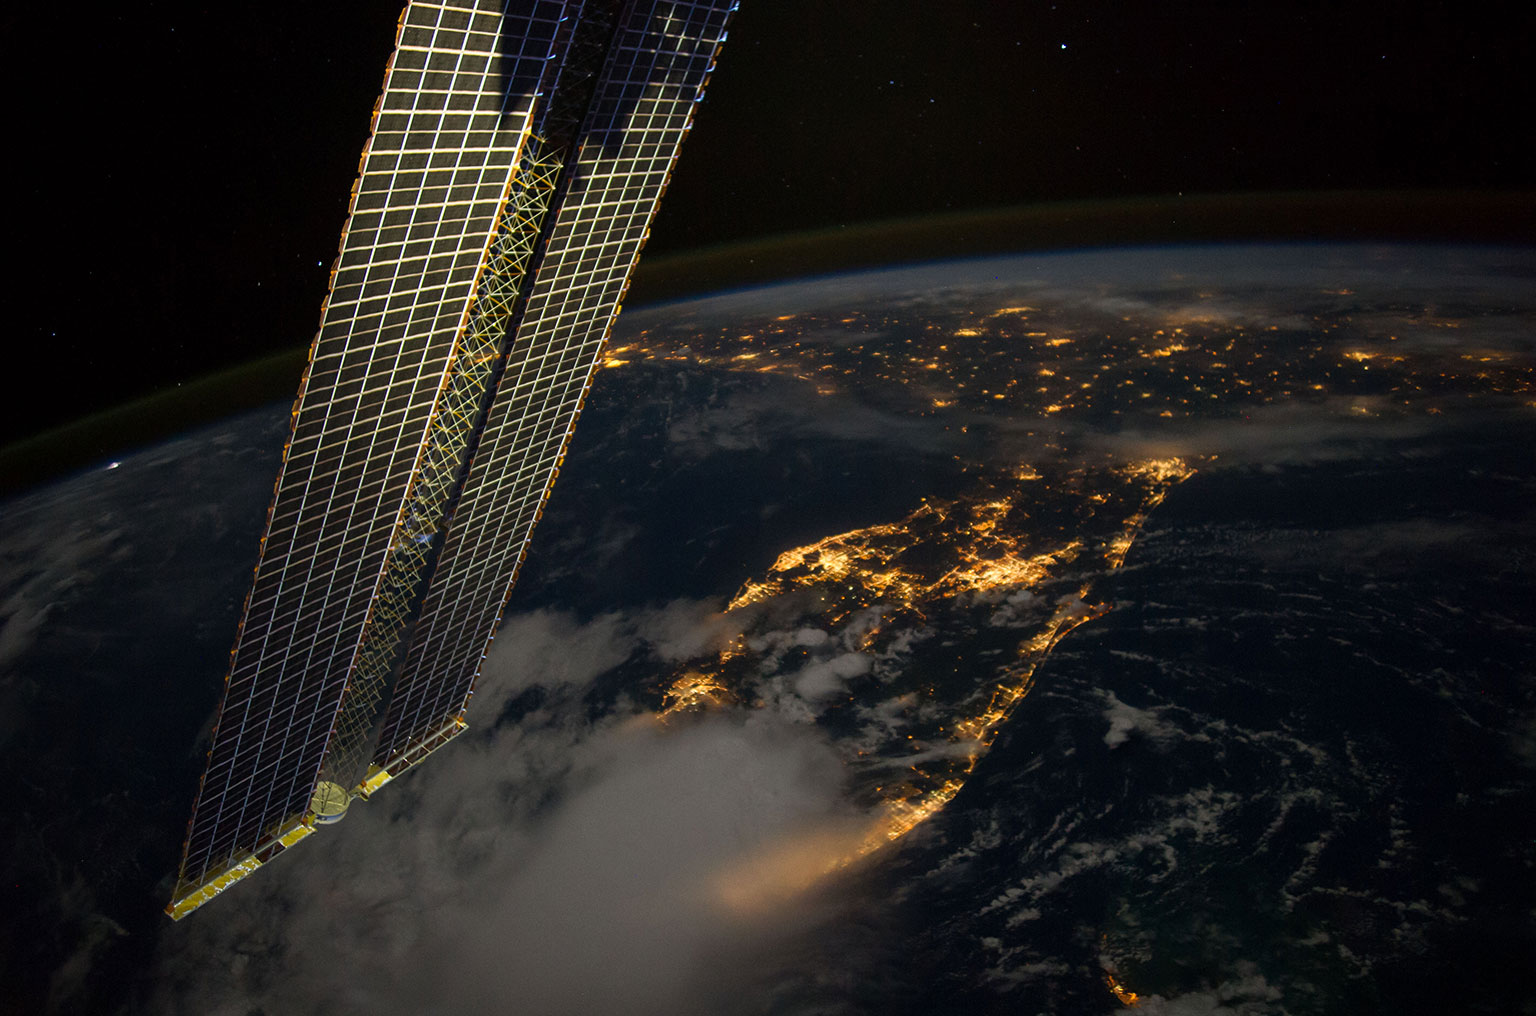 US astronauts haunting images of burning Twin Towers